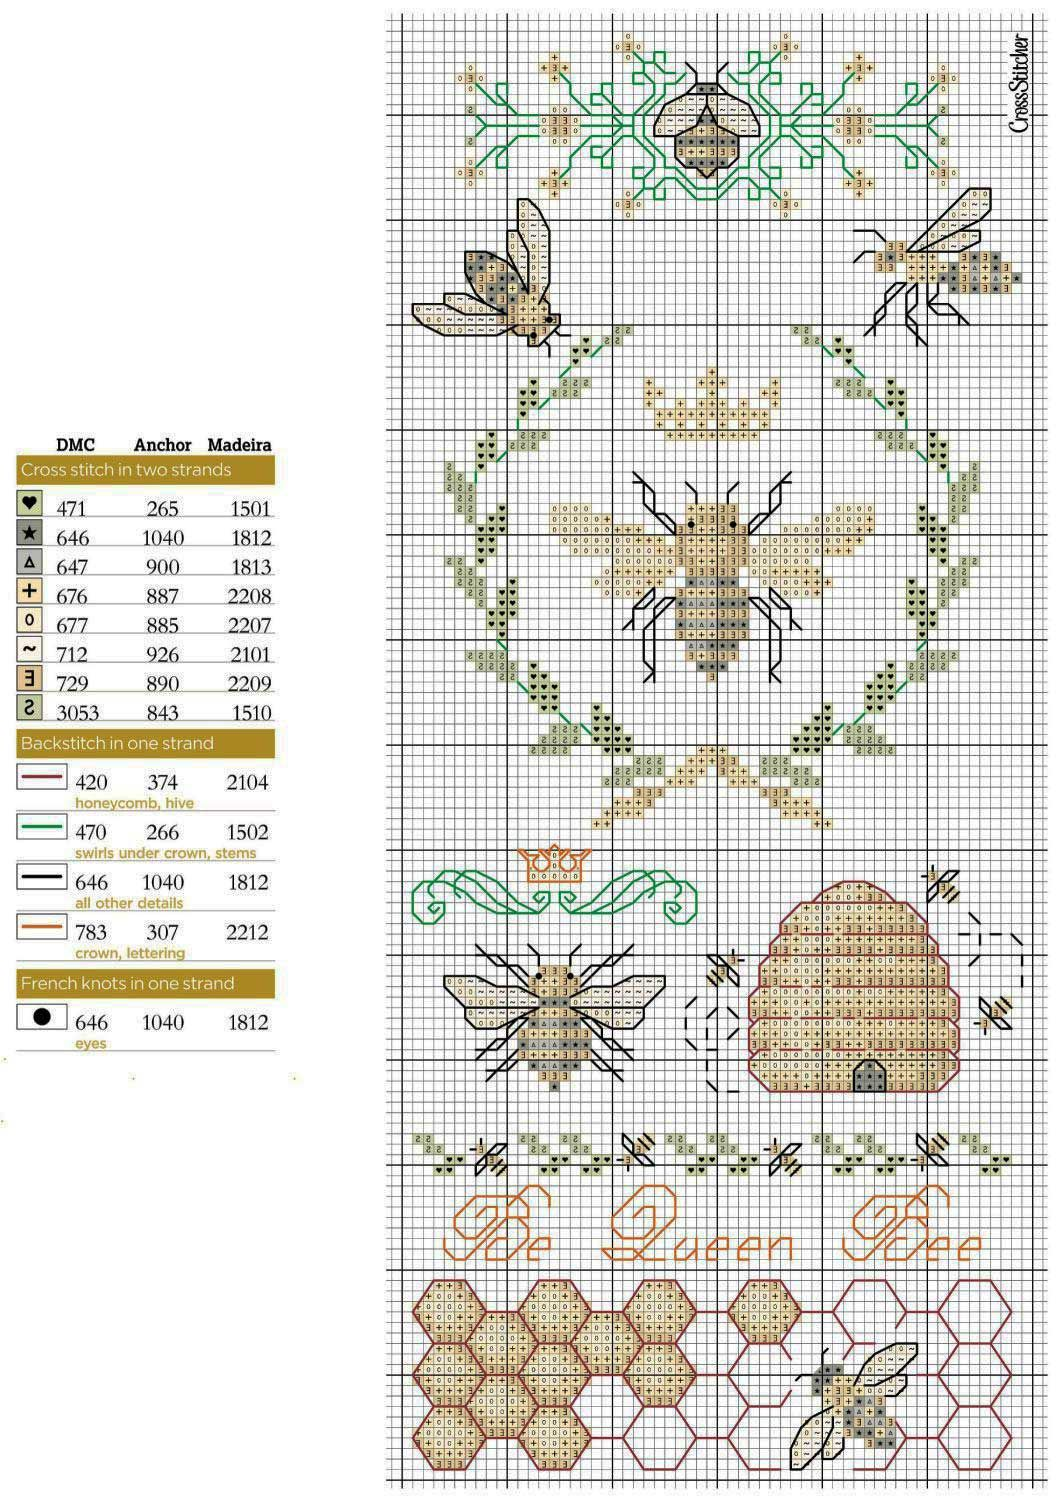 Pillows cross stitch charts free 37 From 43 Pillows Cross Stitch Charts Free